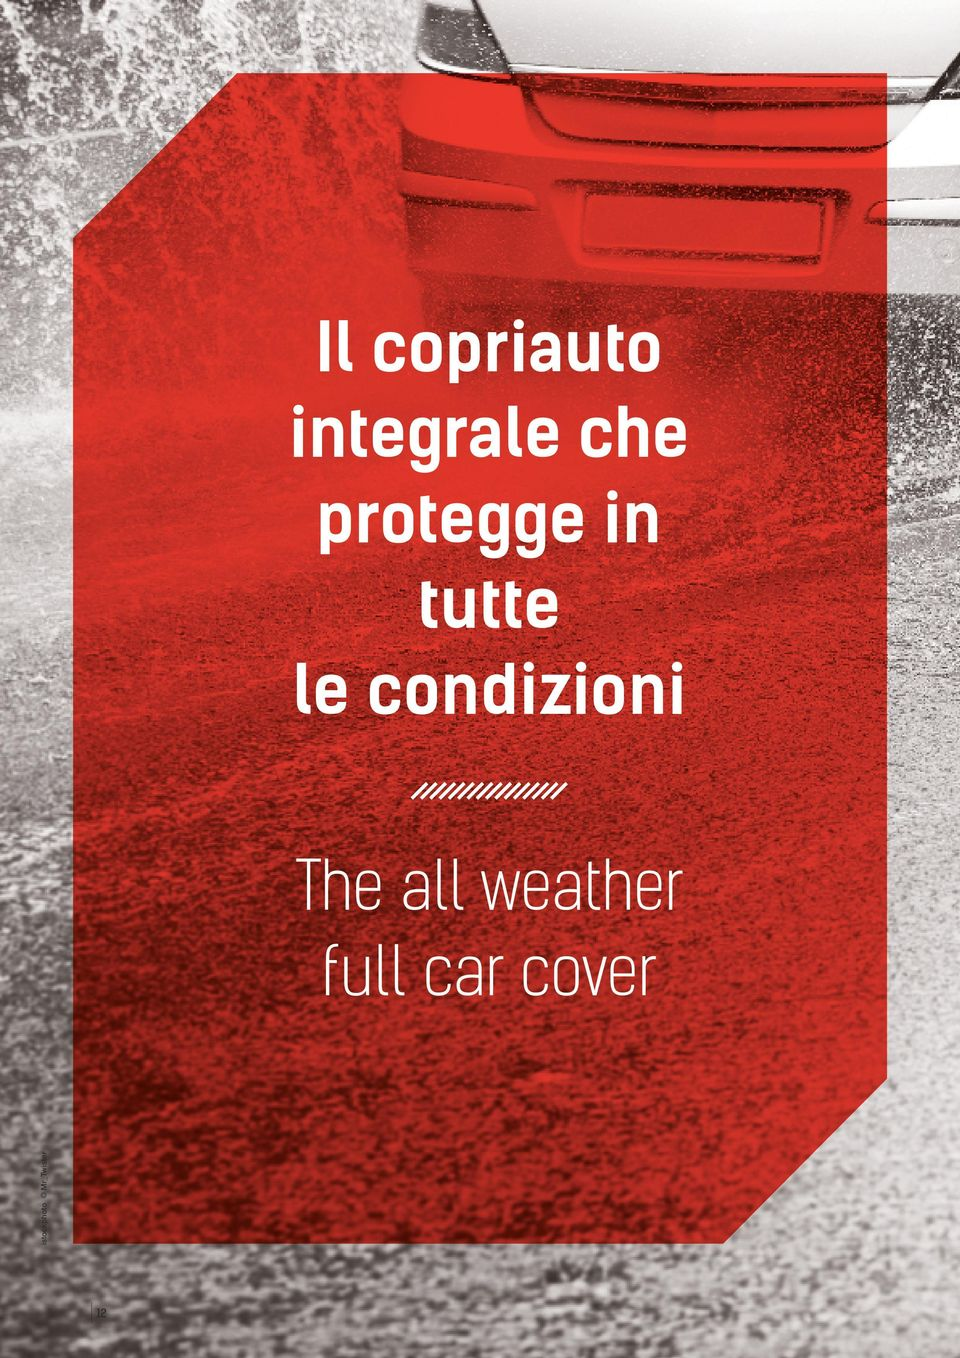 condizioni The all weather